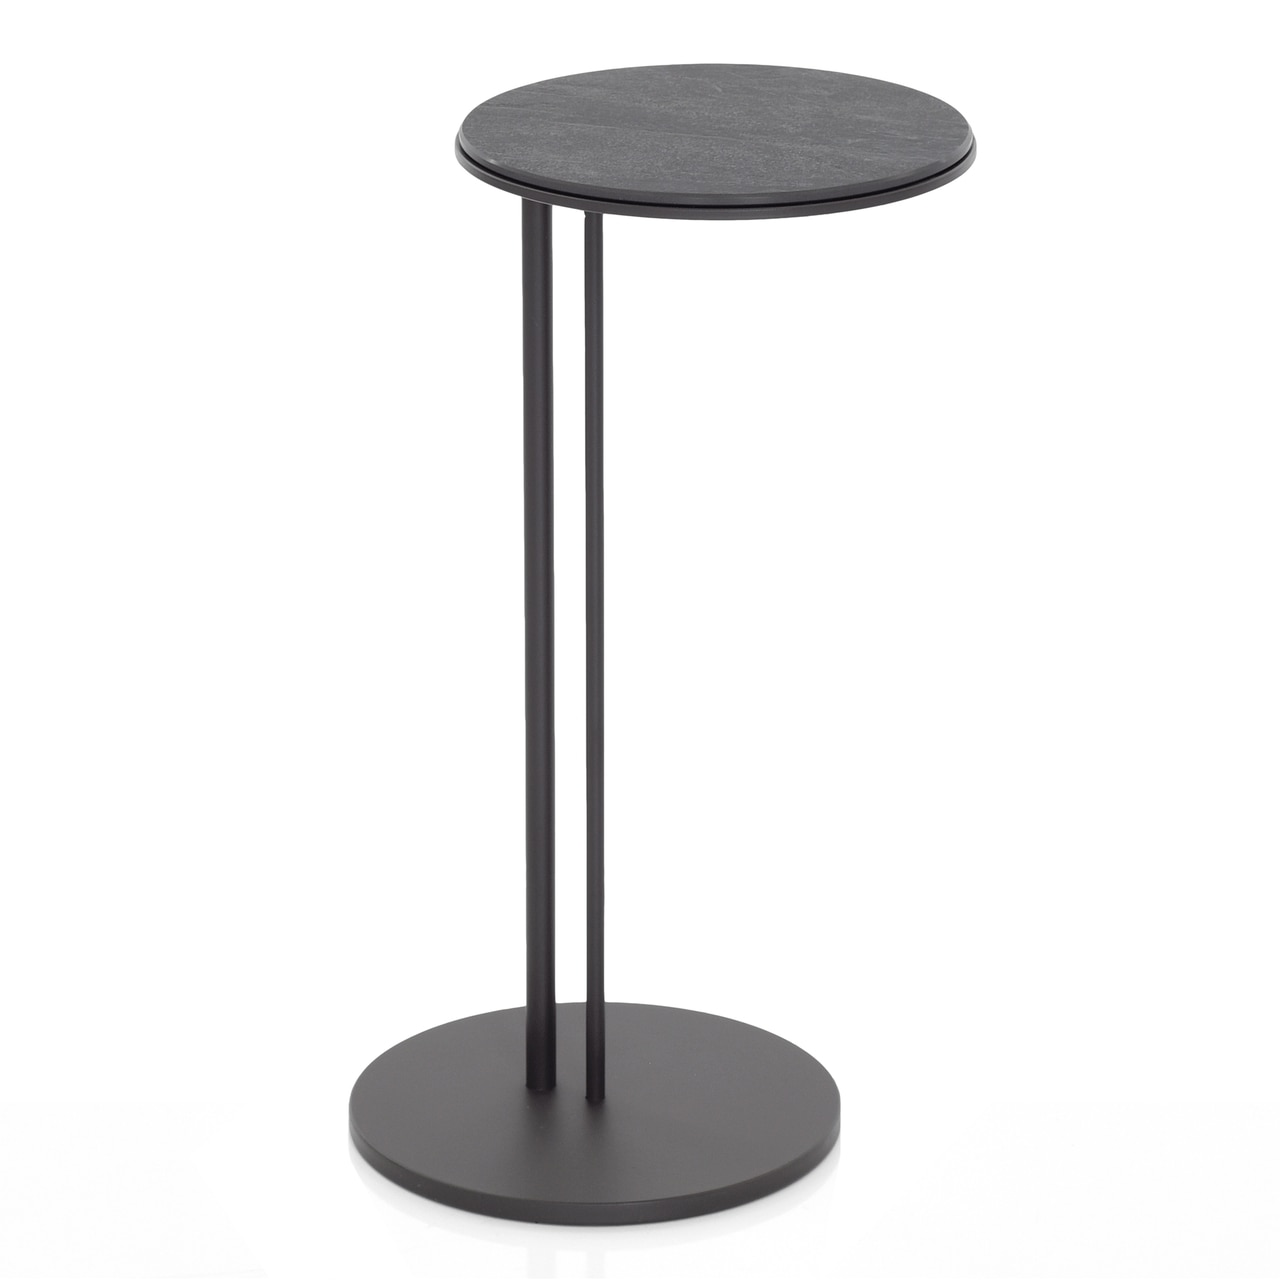 modern end tables cantoni outdoor mosaic stone accent table sting short ardesia ceramic lift top coffee narrow sofas for small spaces washer dryer floor and lamp set contemporary